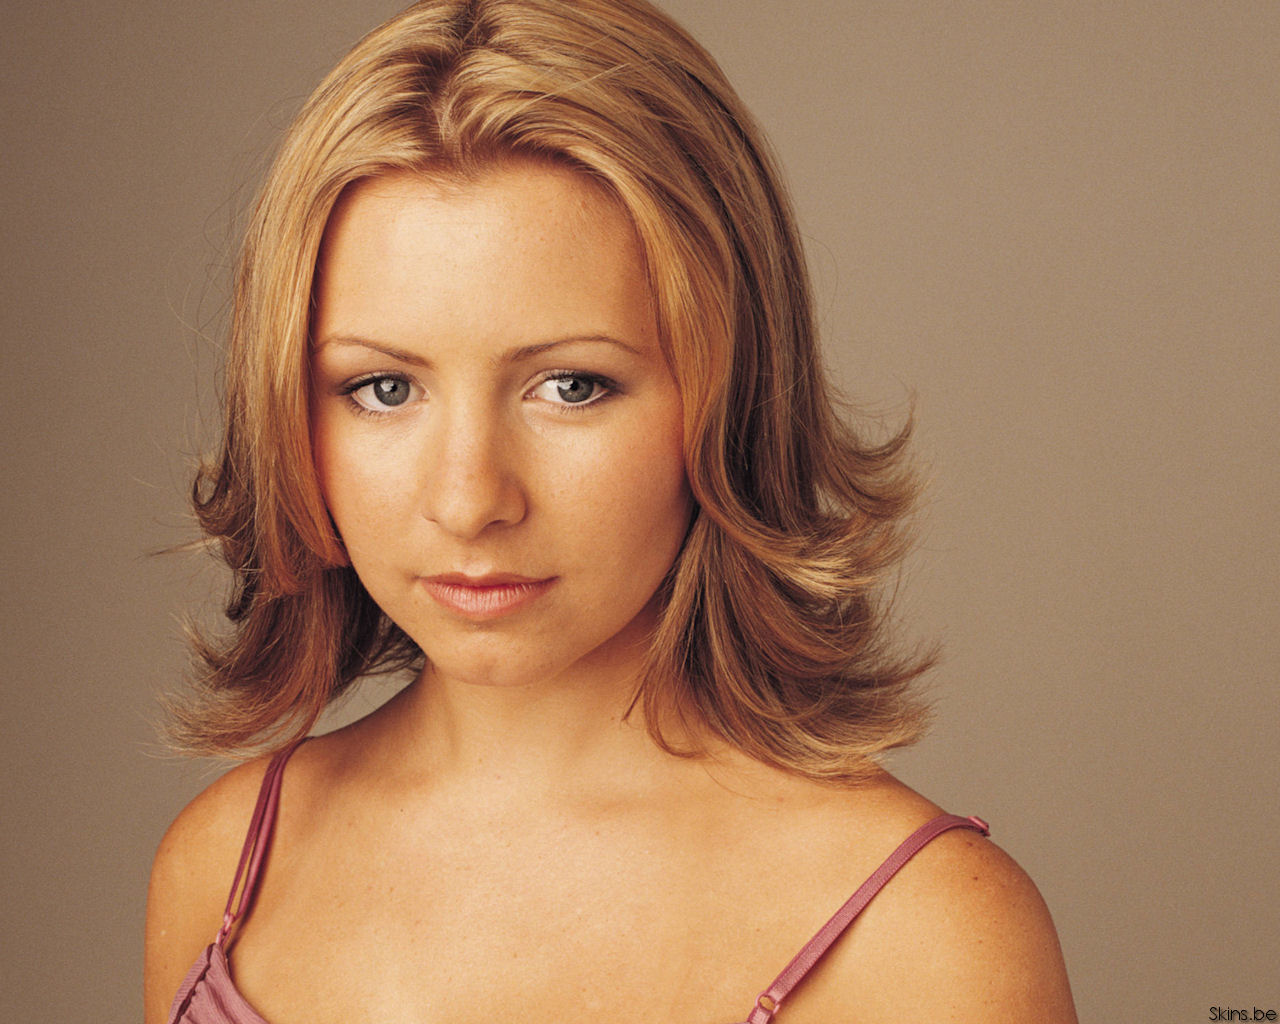 1280x1024 - Beverley Mitchell Wallpapers 15